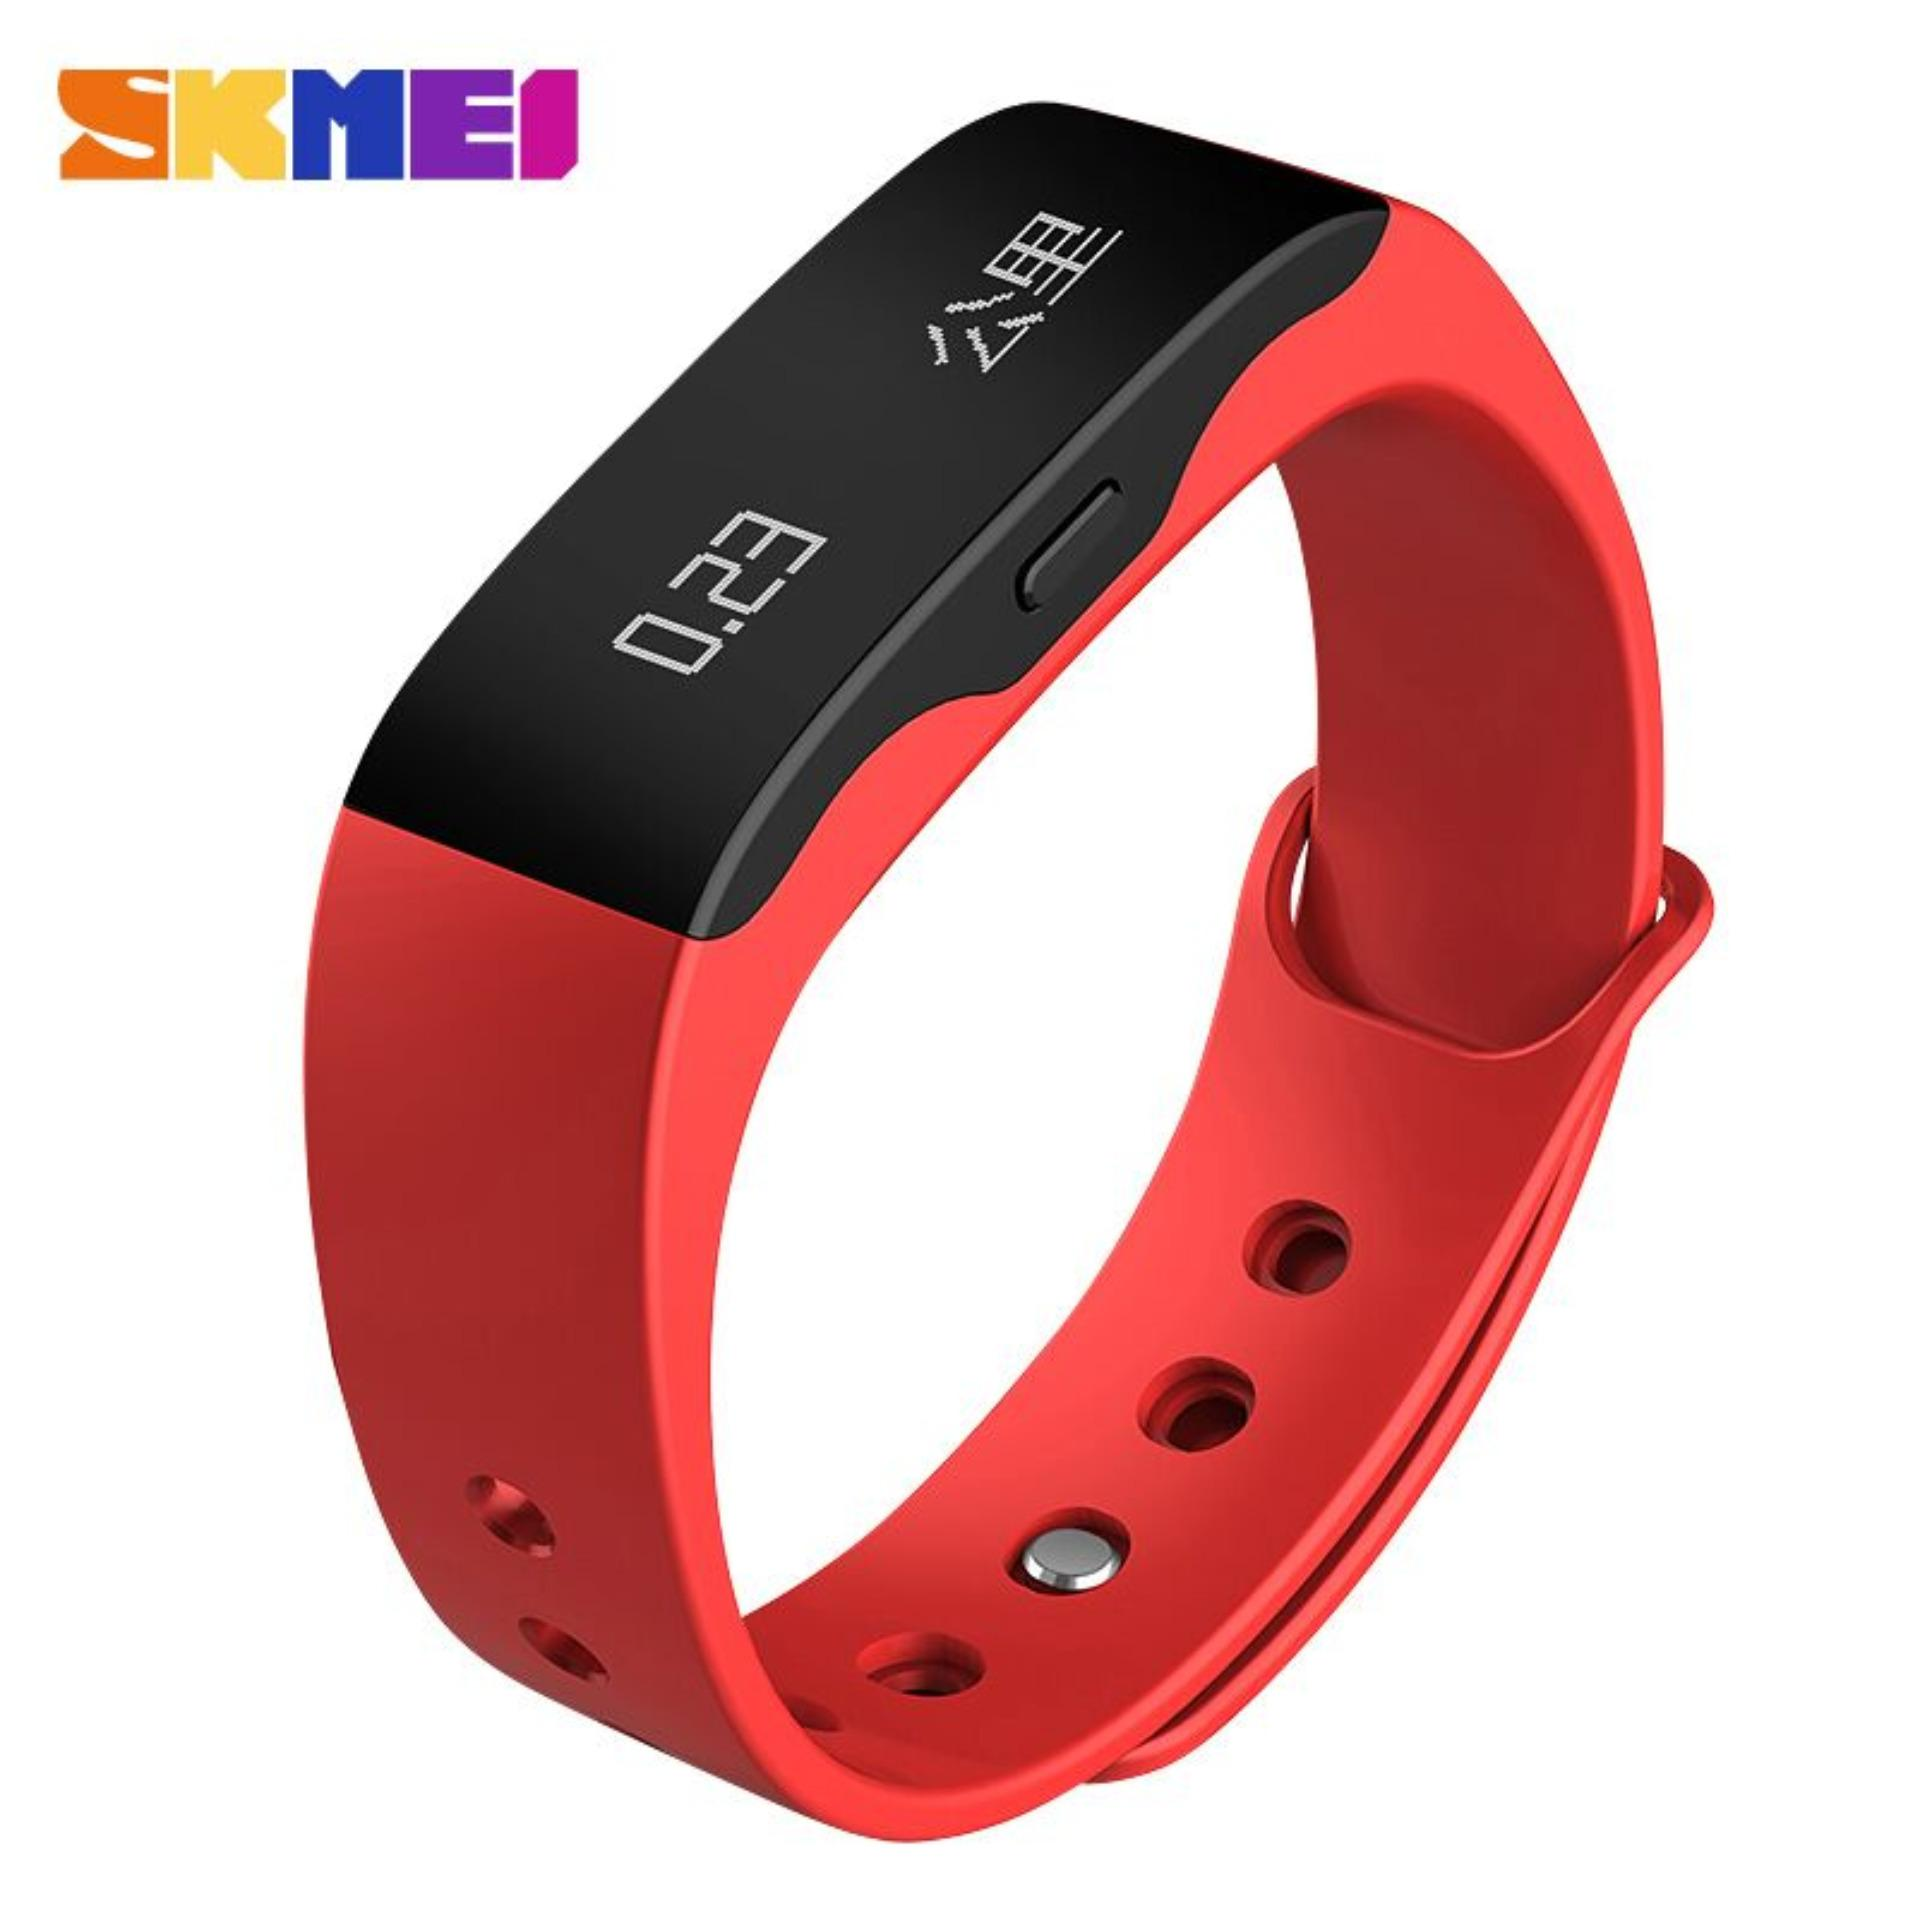 Jual Skmei Jam Tangan Oled Gelang Smartwatch Fitness Notification L28T Branded Original